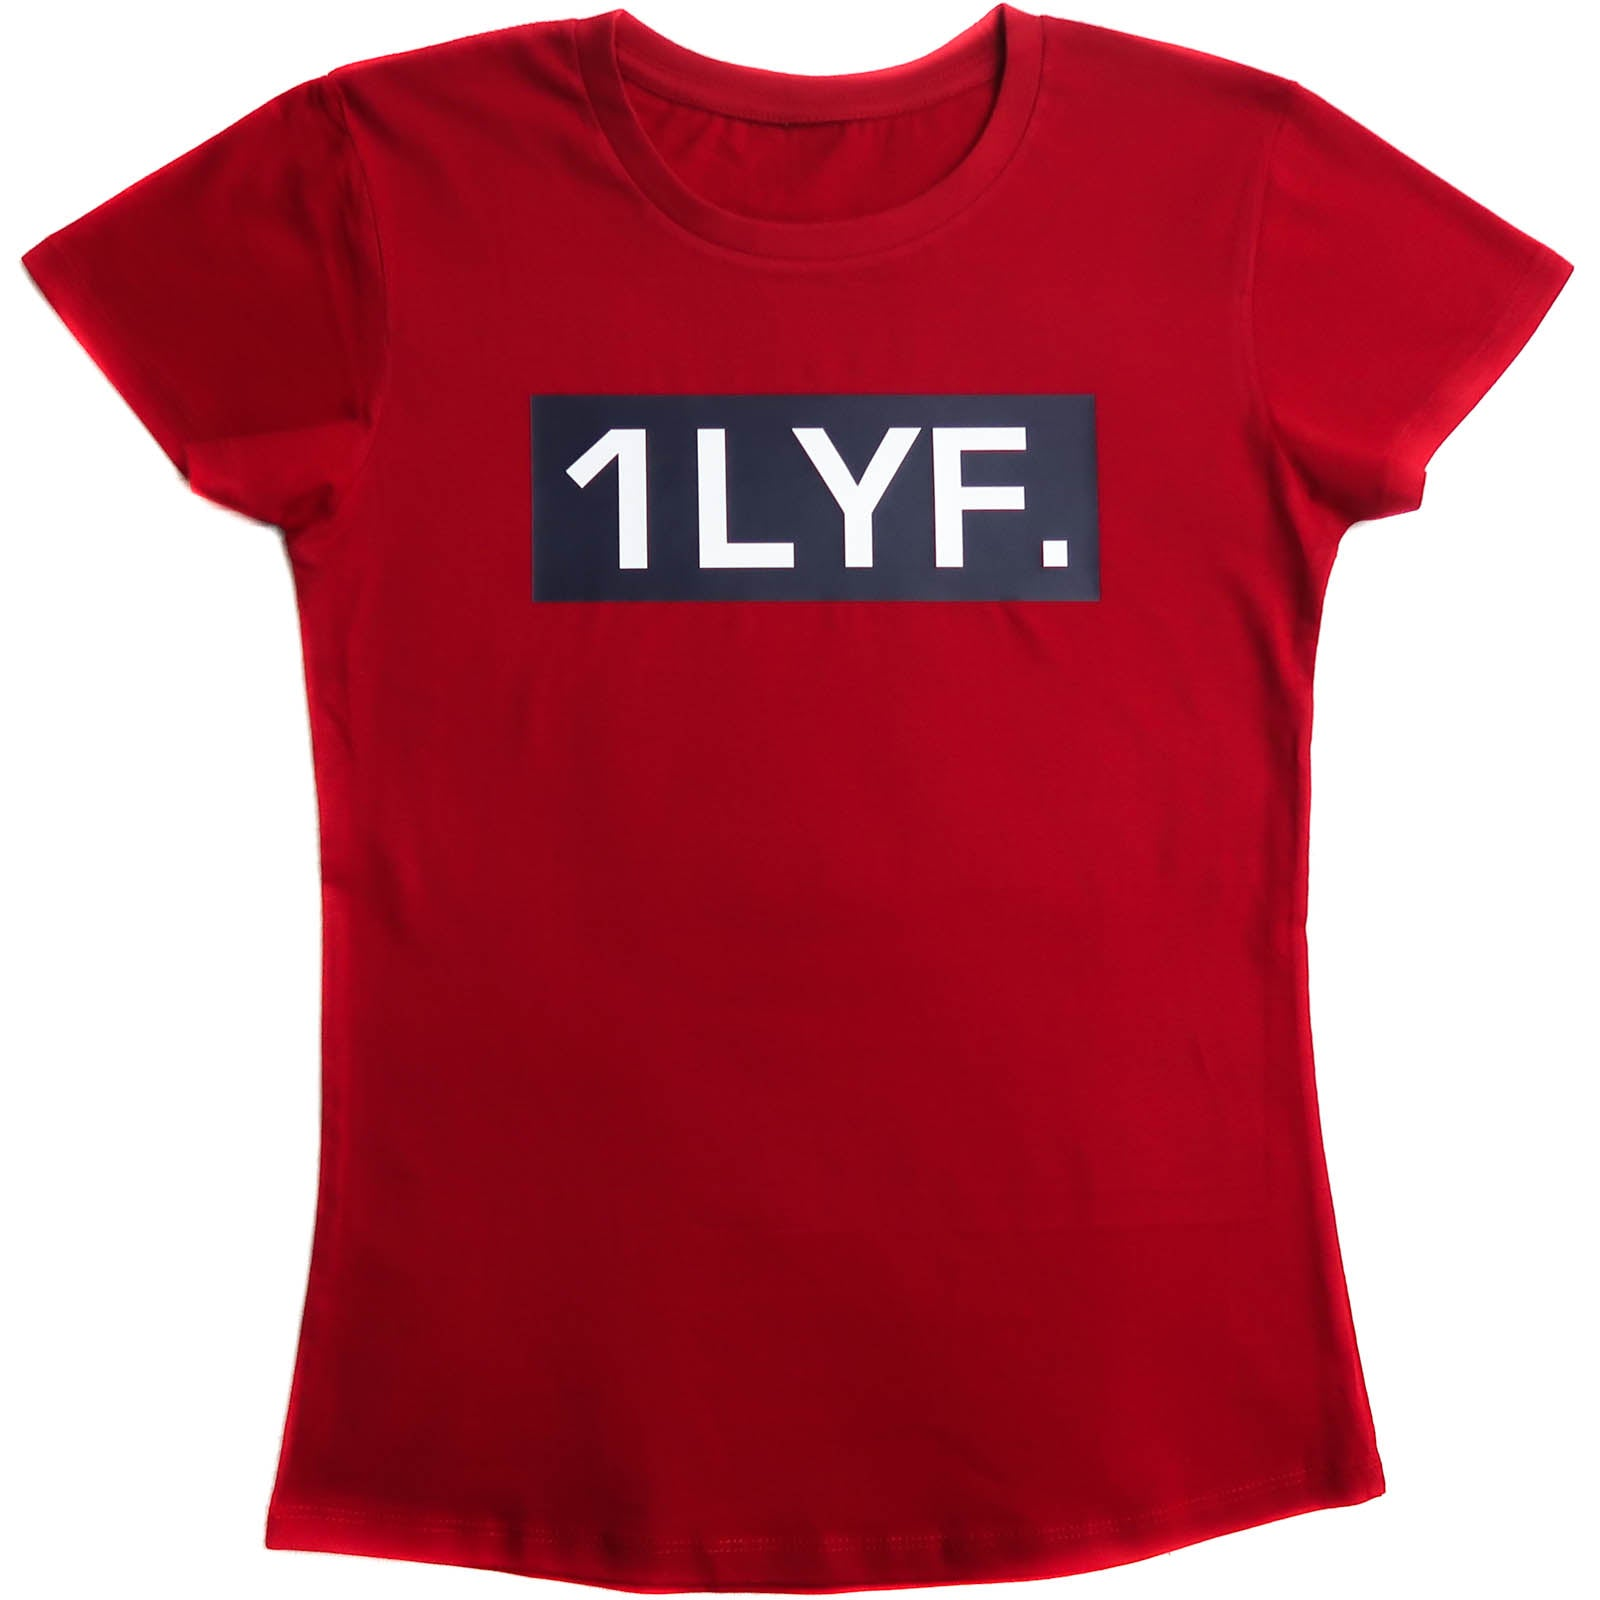 Womens Original Red/Navy T-shirt